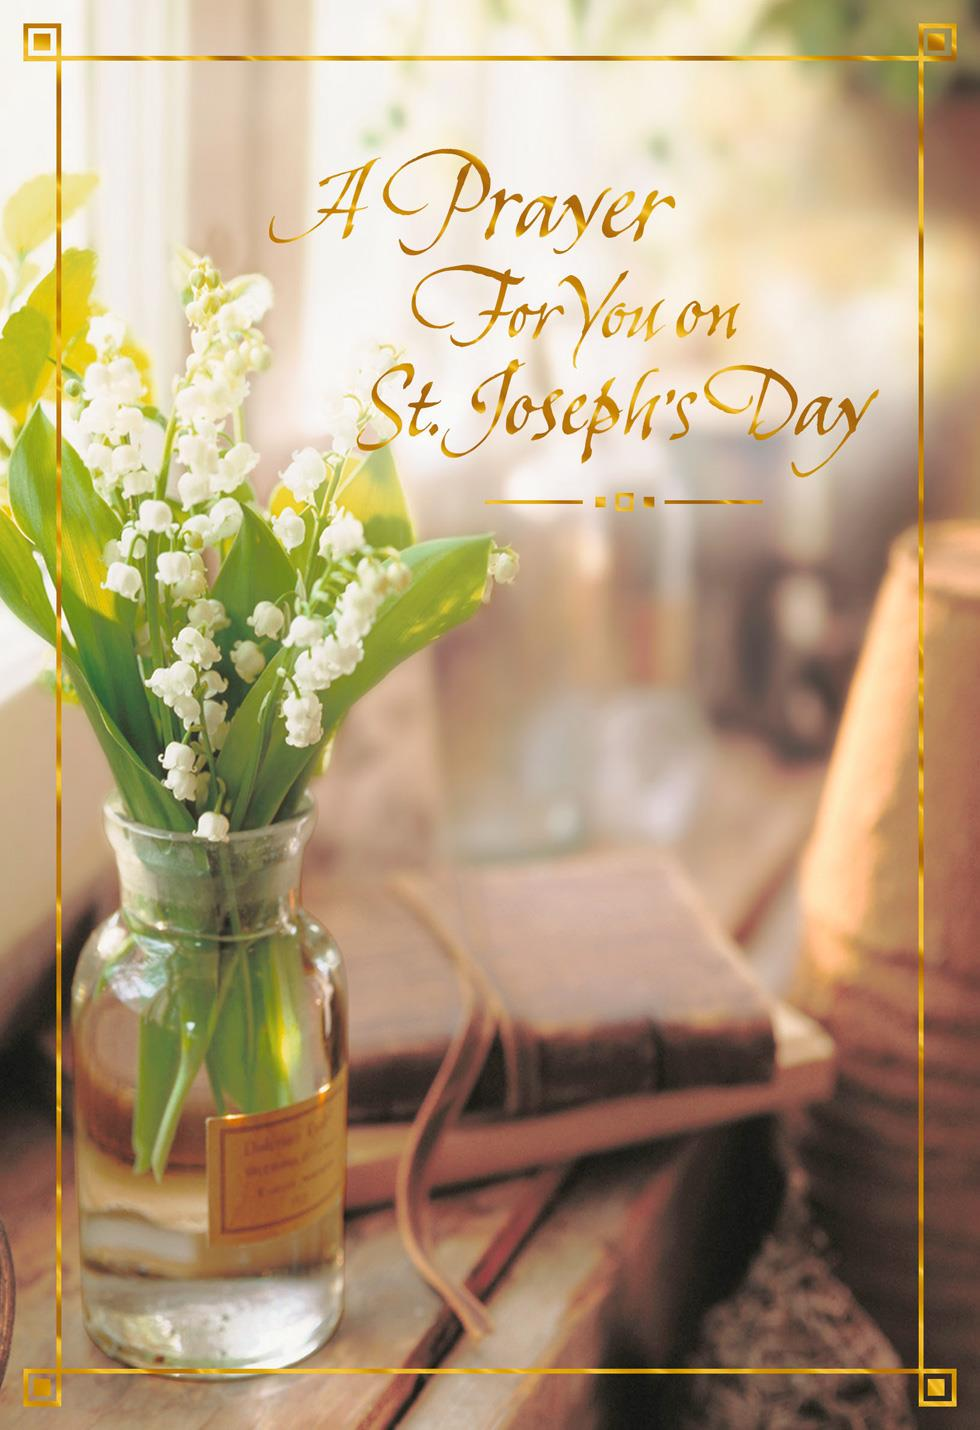 Lily of the valley st josephs day prayer card greeting cards lily of the valley st josephs day prayer card izmirmasajfo Gallery